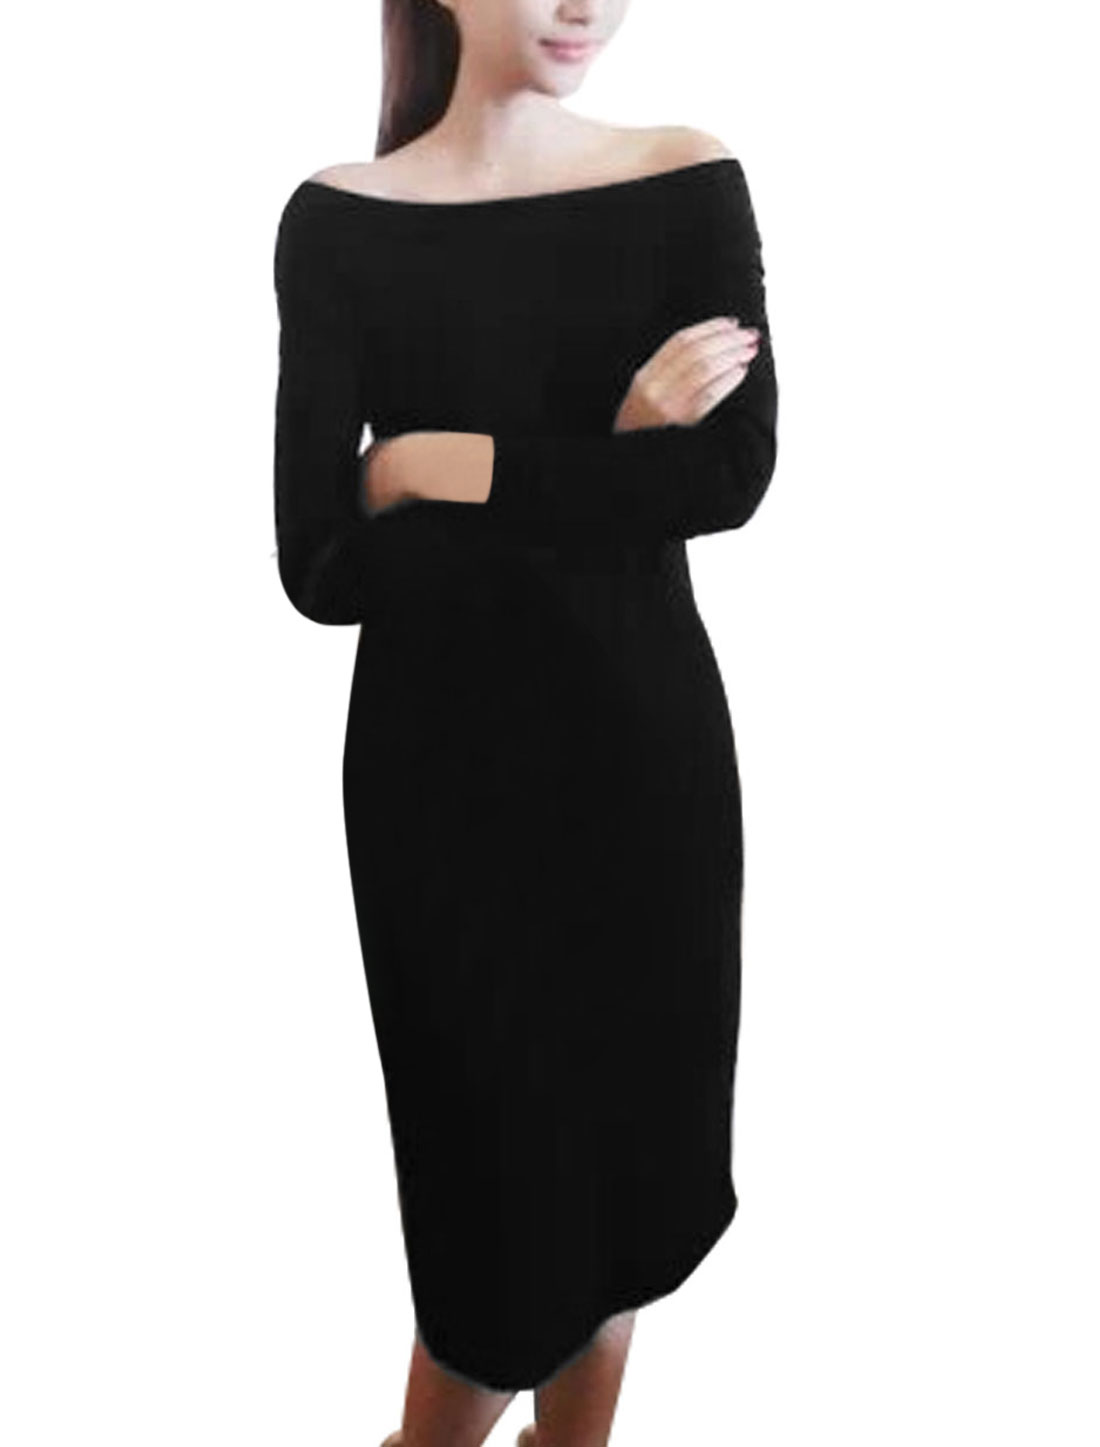 Lady Off The Shoulder Long Sleeve Slim Fit Dress w Hair Scarf Black S